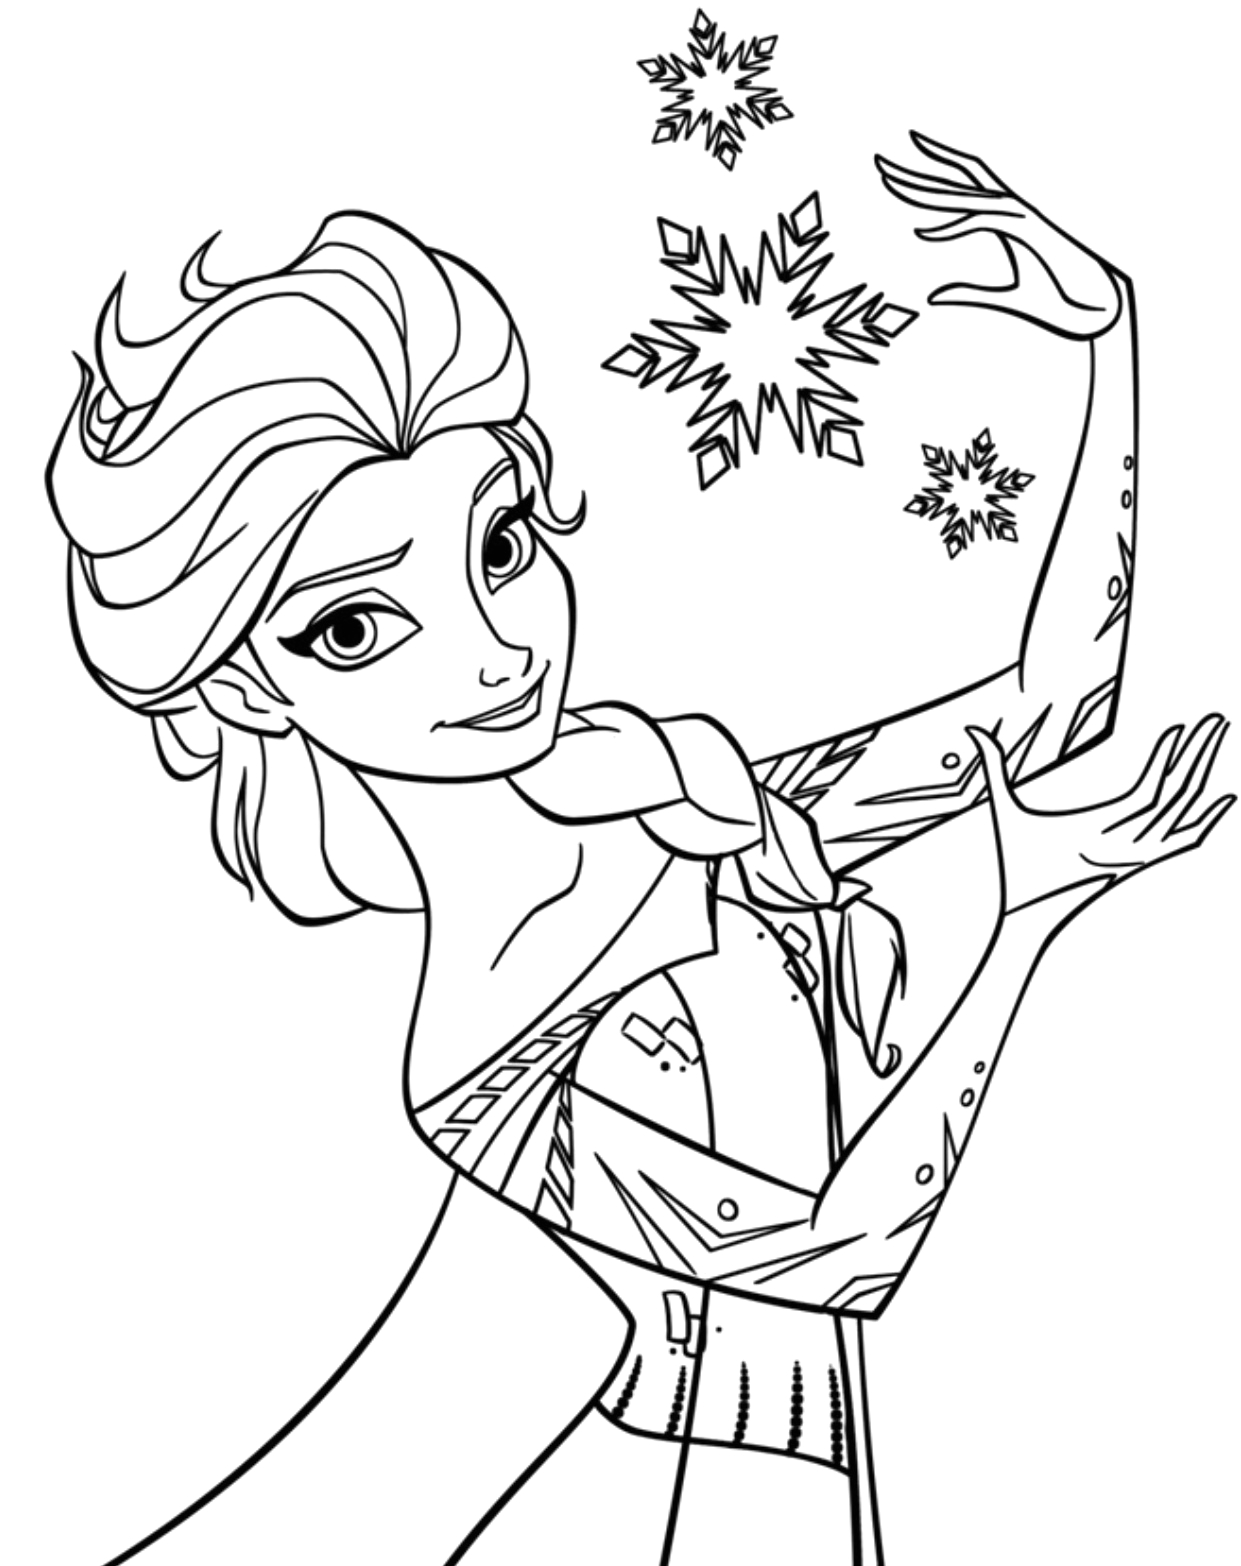 Free Coloring Pages to Print for Kids Free Printable Elsa Coloring Pages for Kids Best